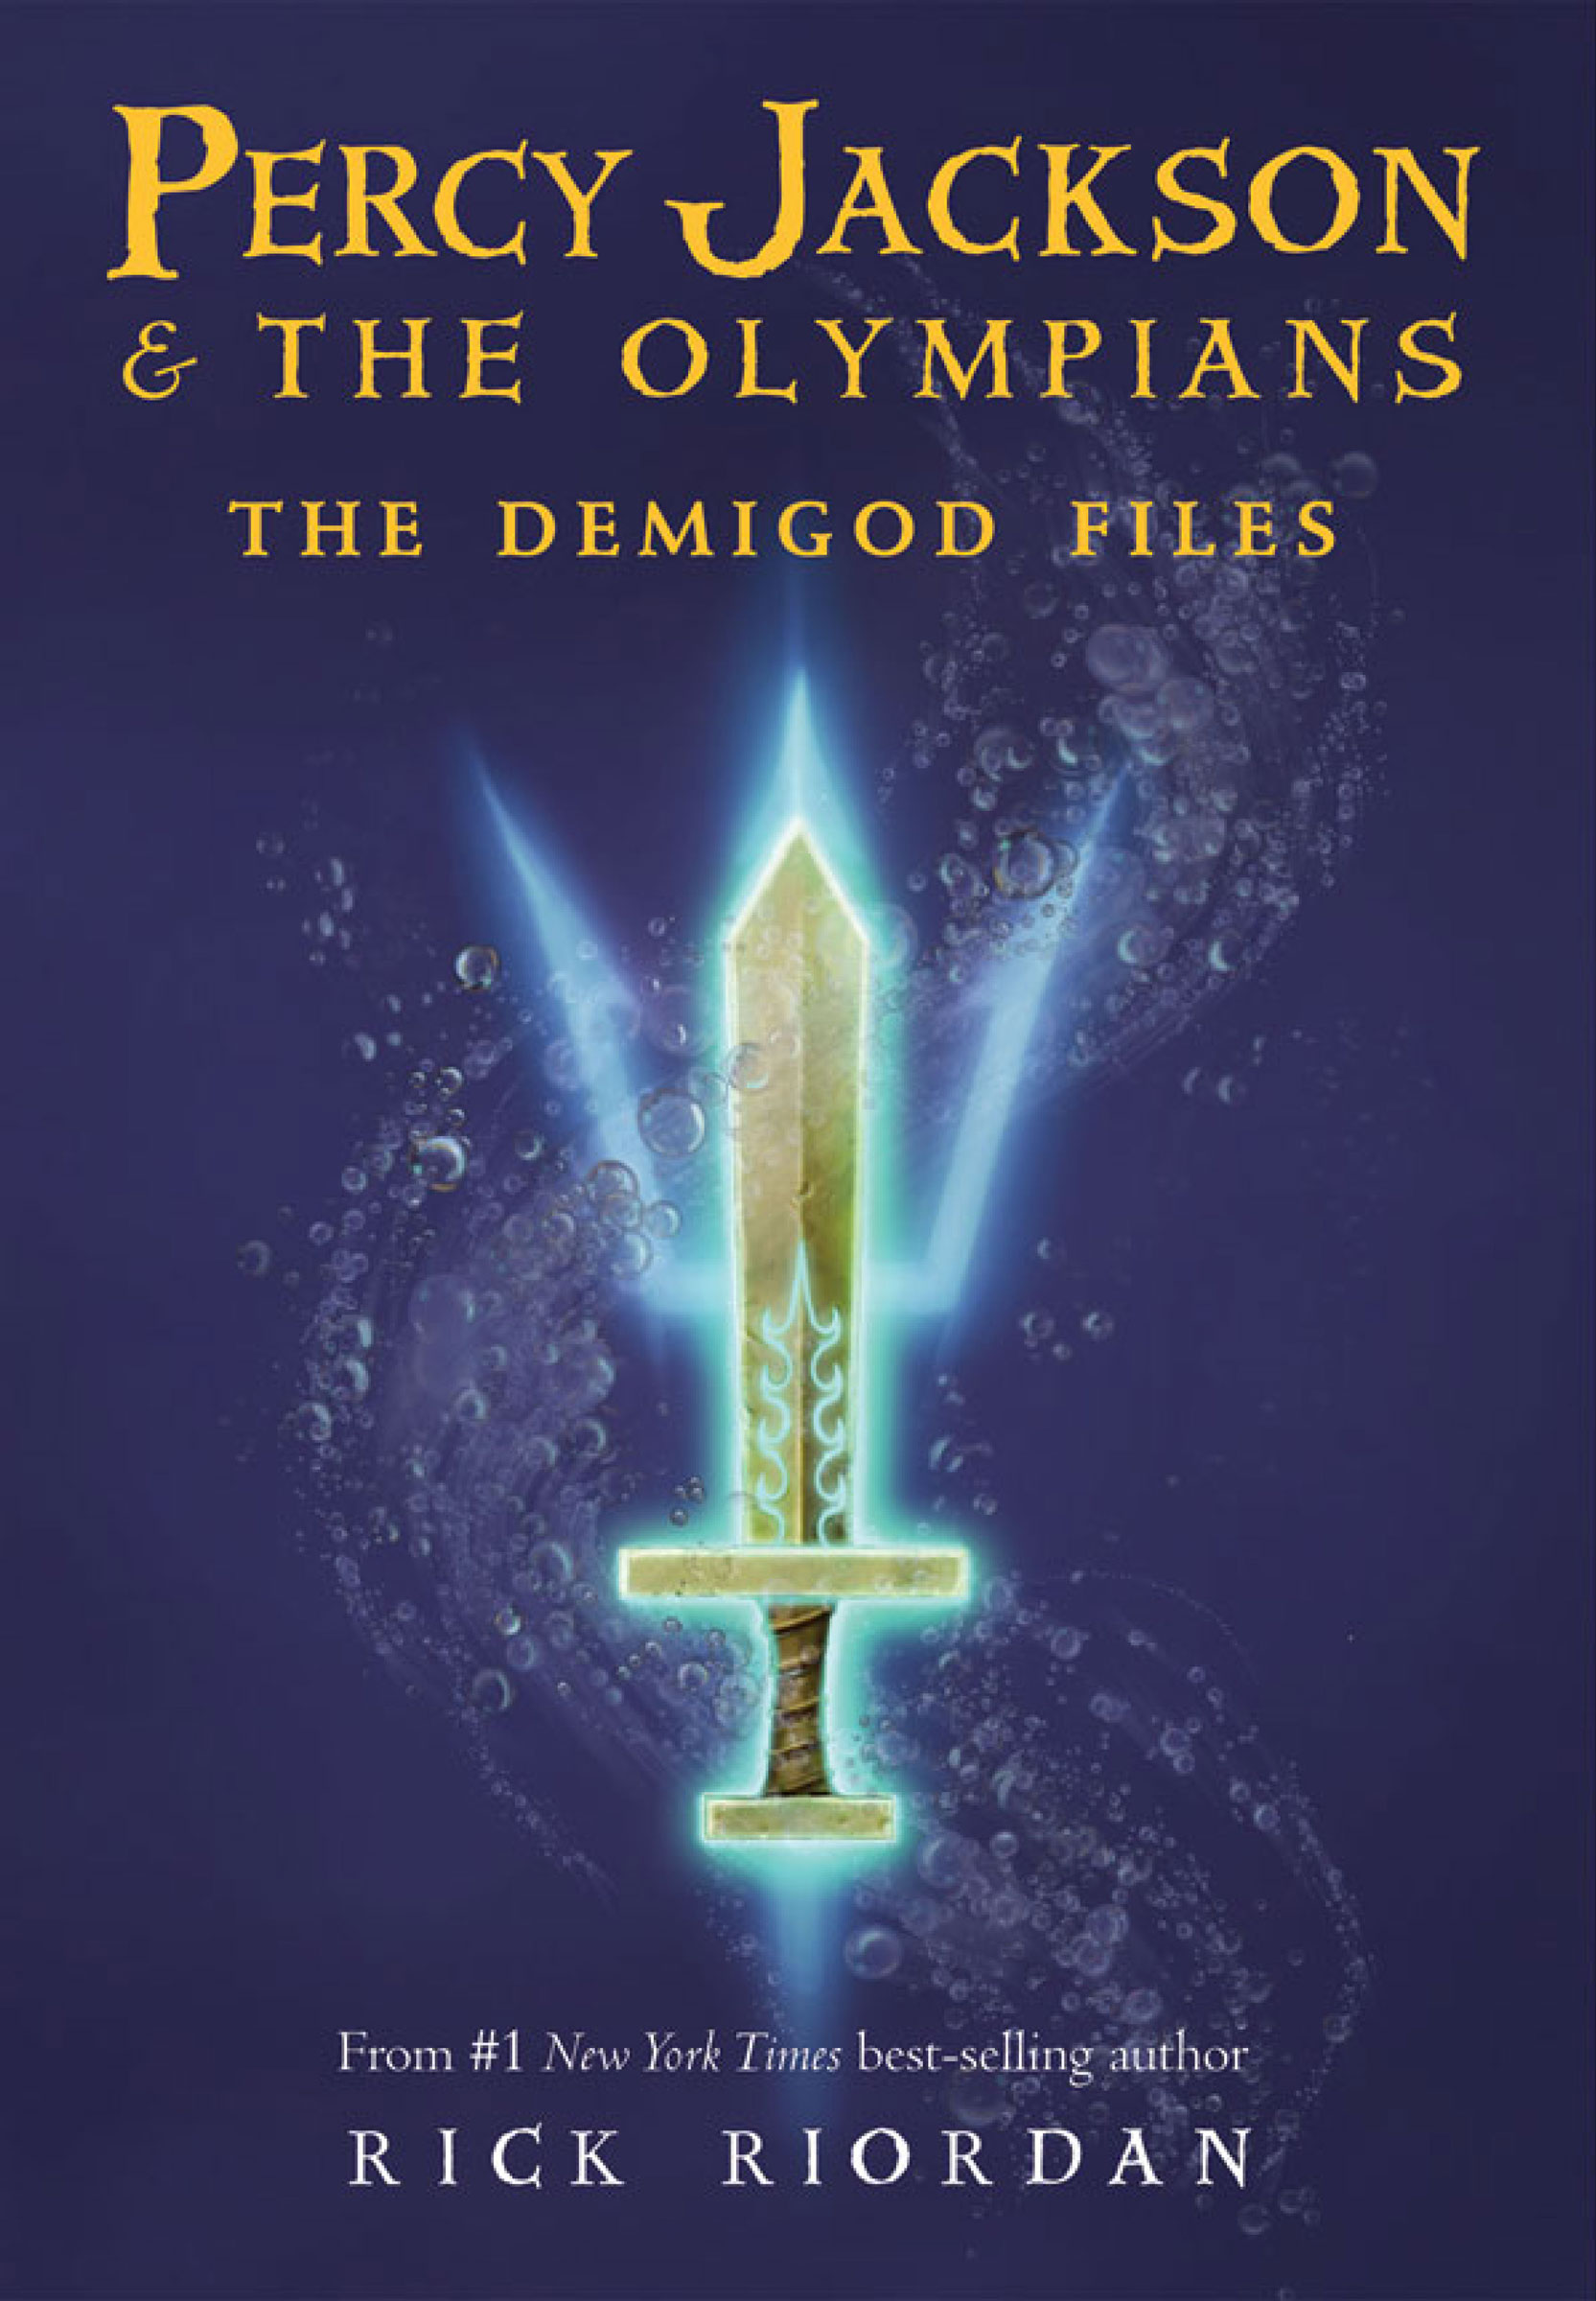 Cover Image of Percy Jackson: The Demigod Files